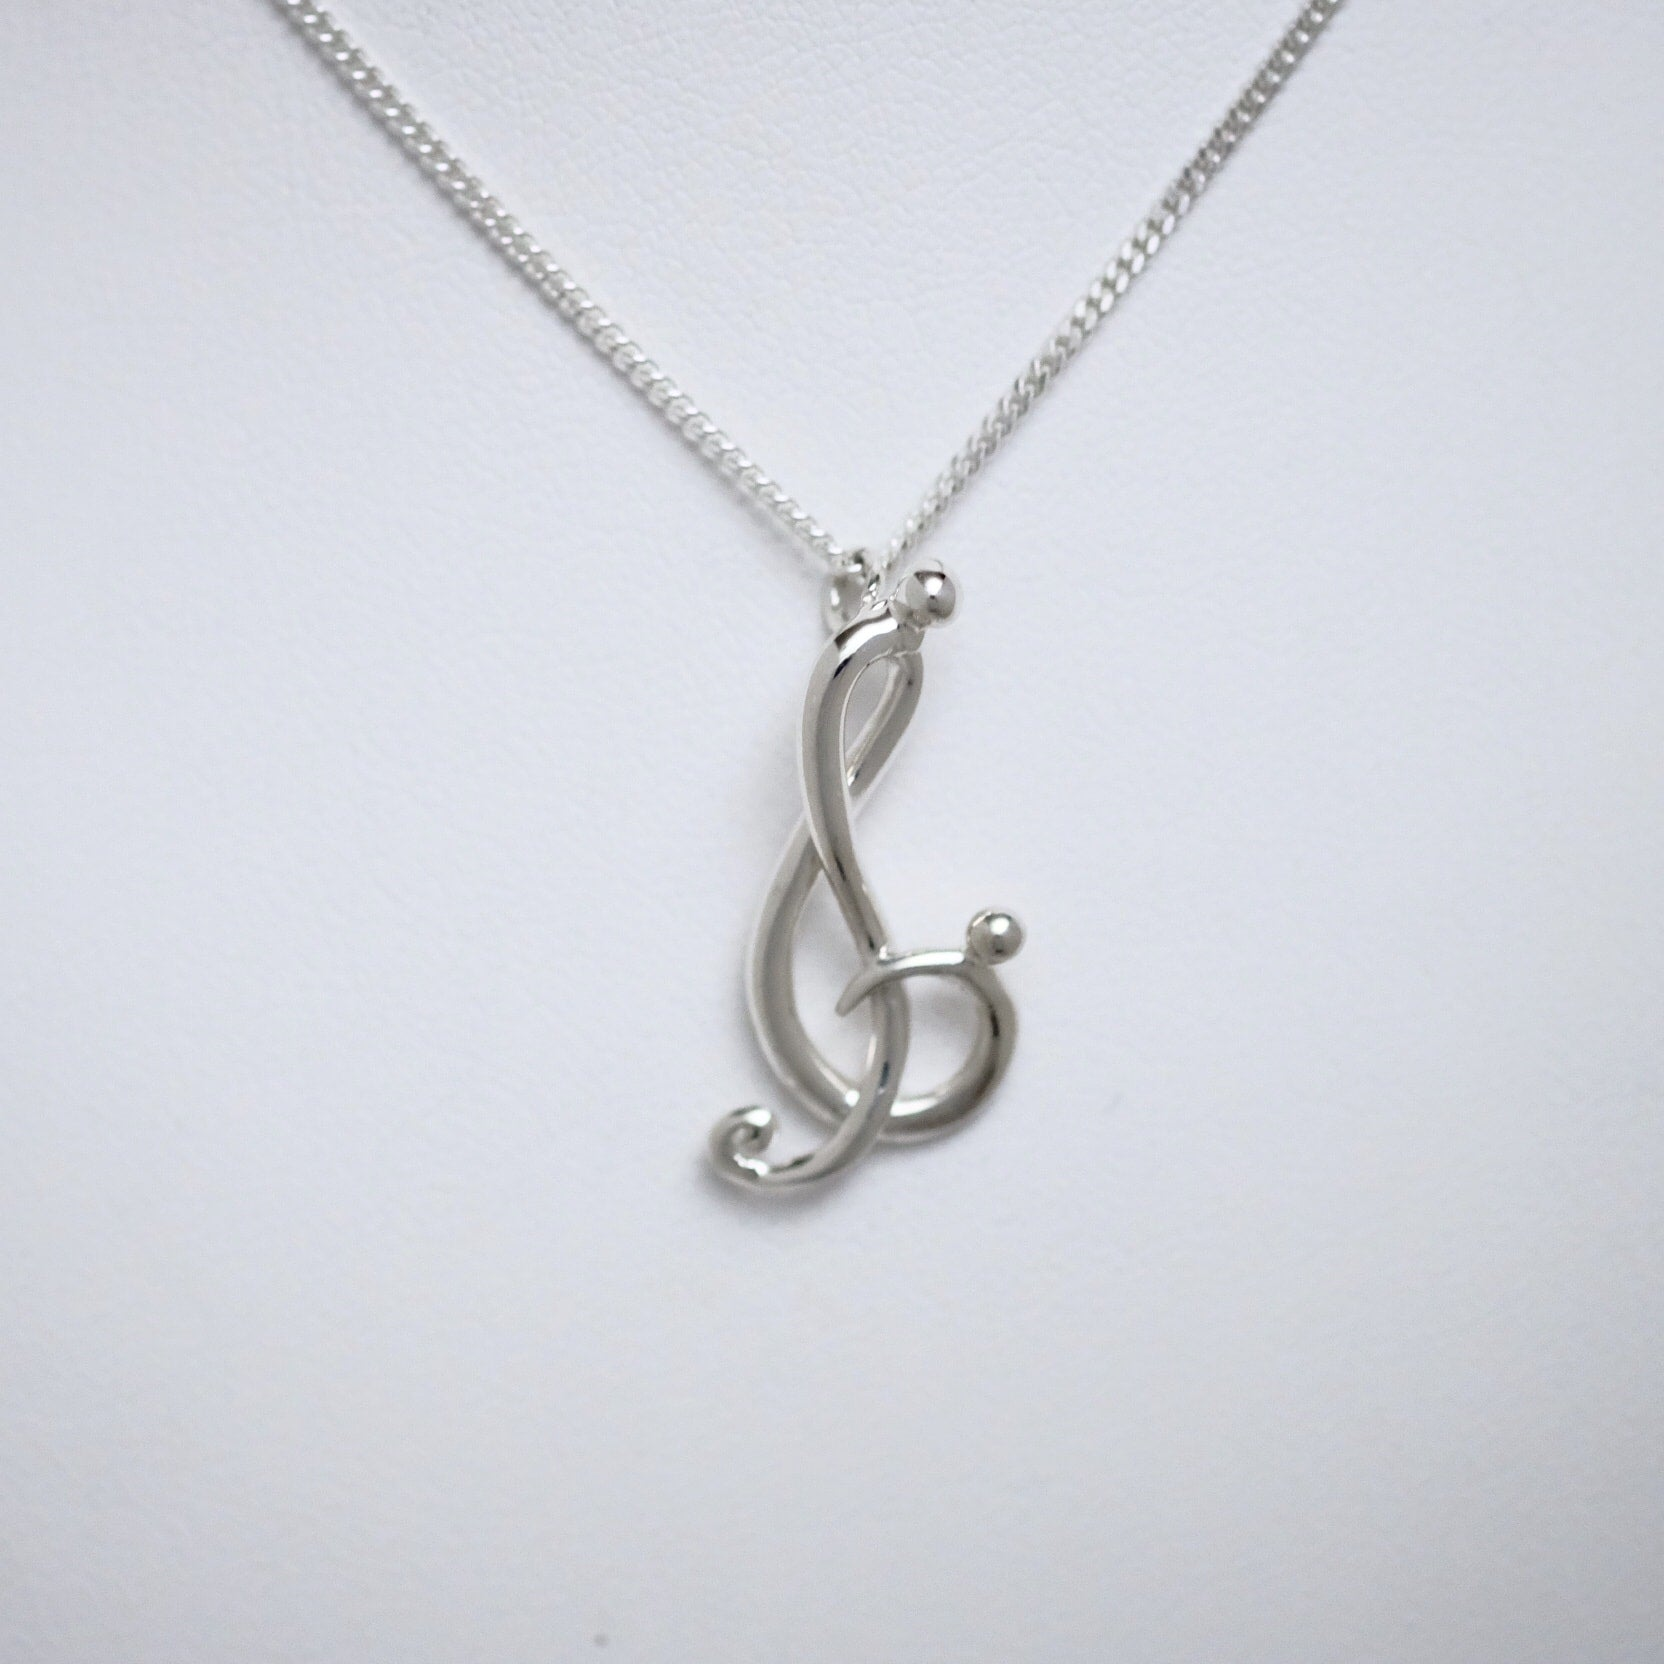 Melody of Love small sterling silver pendant by Joseph Chiang